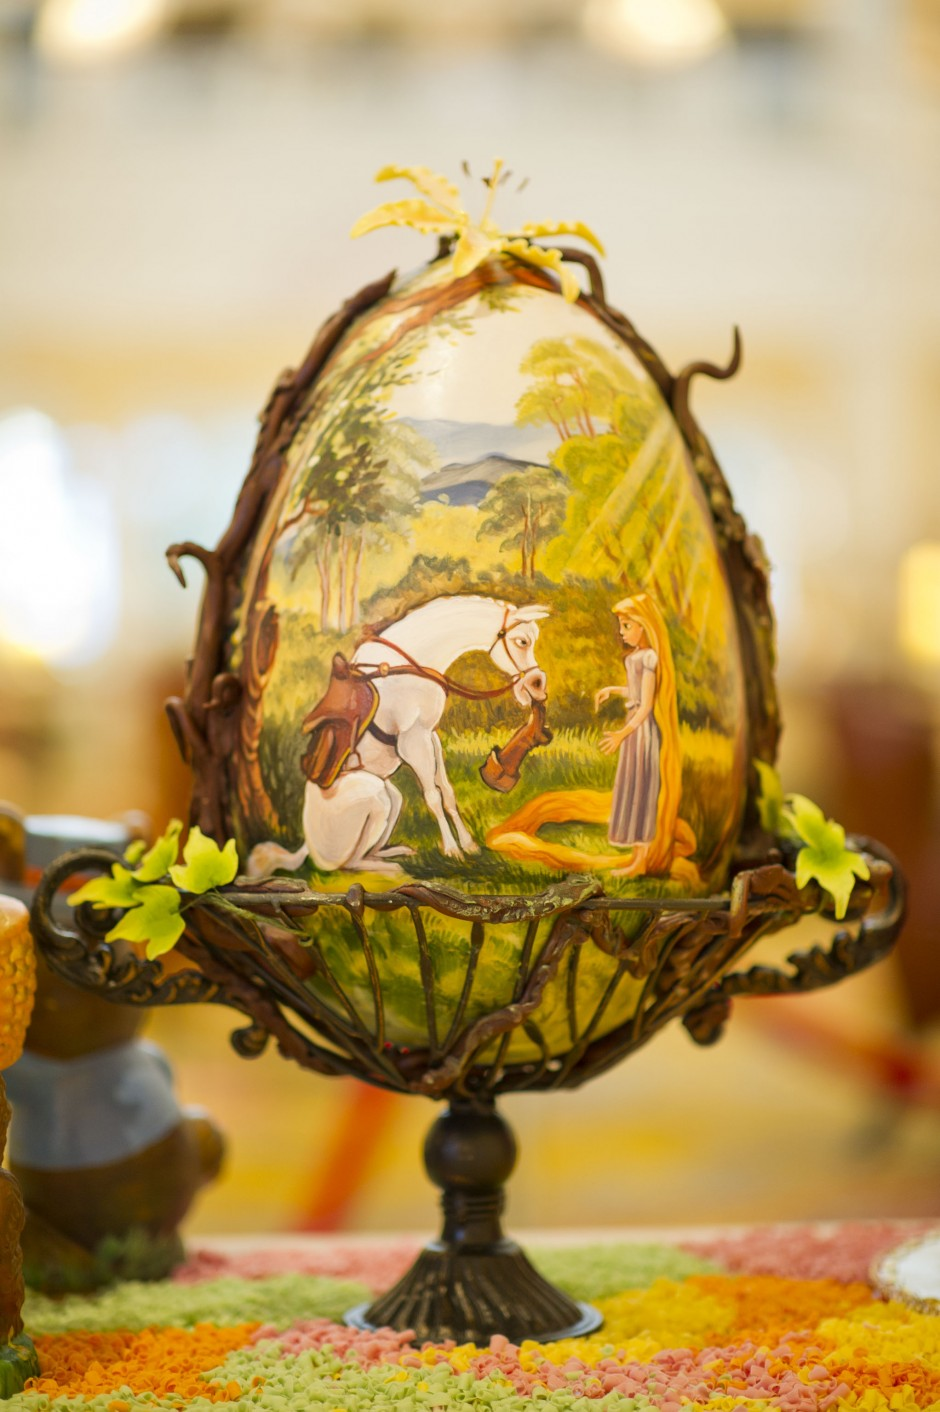 Chocolate Disney Easter Eggs That are True Works of Art